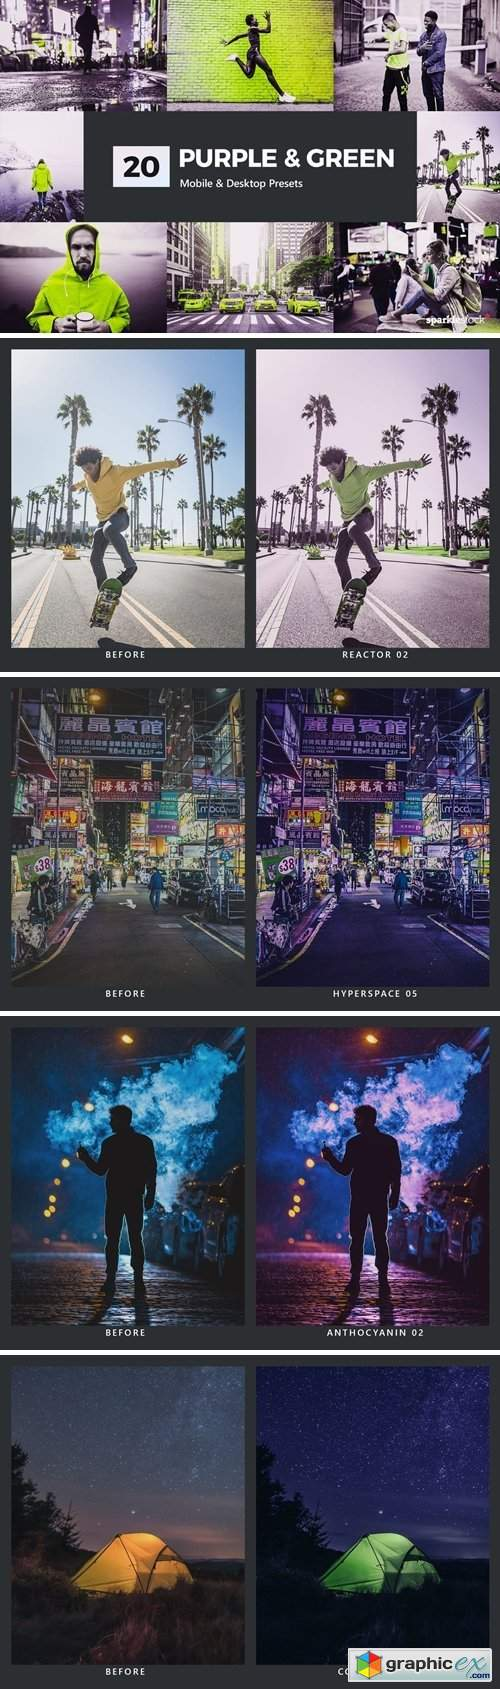 20 Purple & Green Lightroom Presets and LUTs